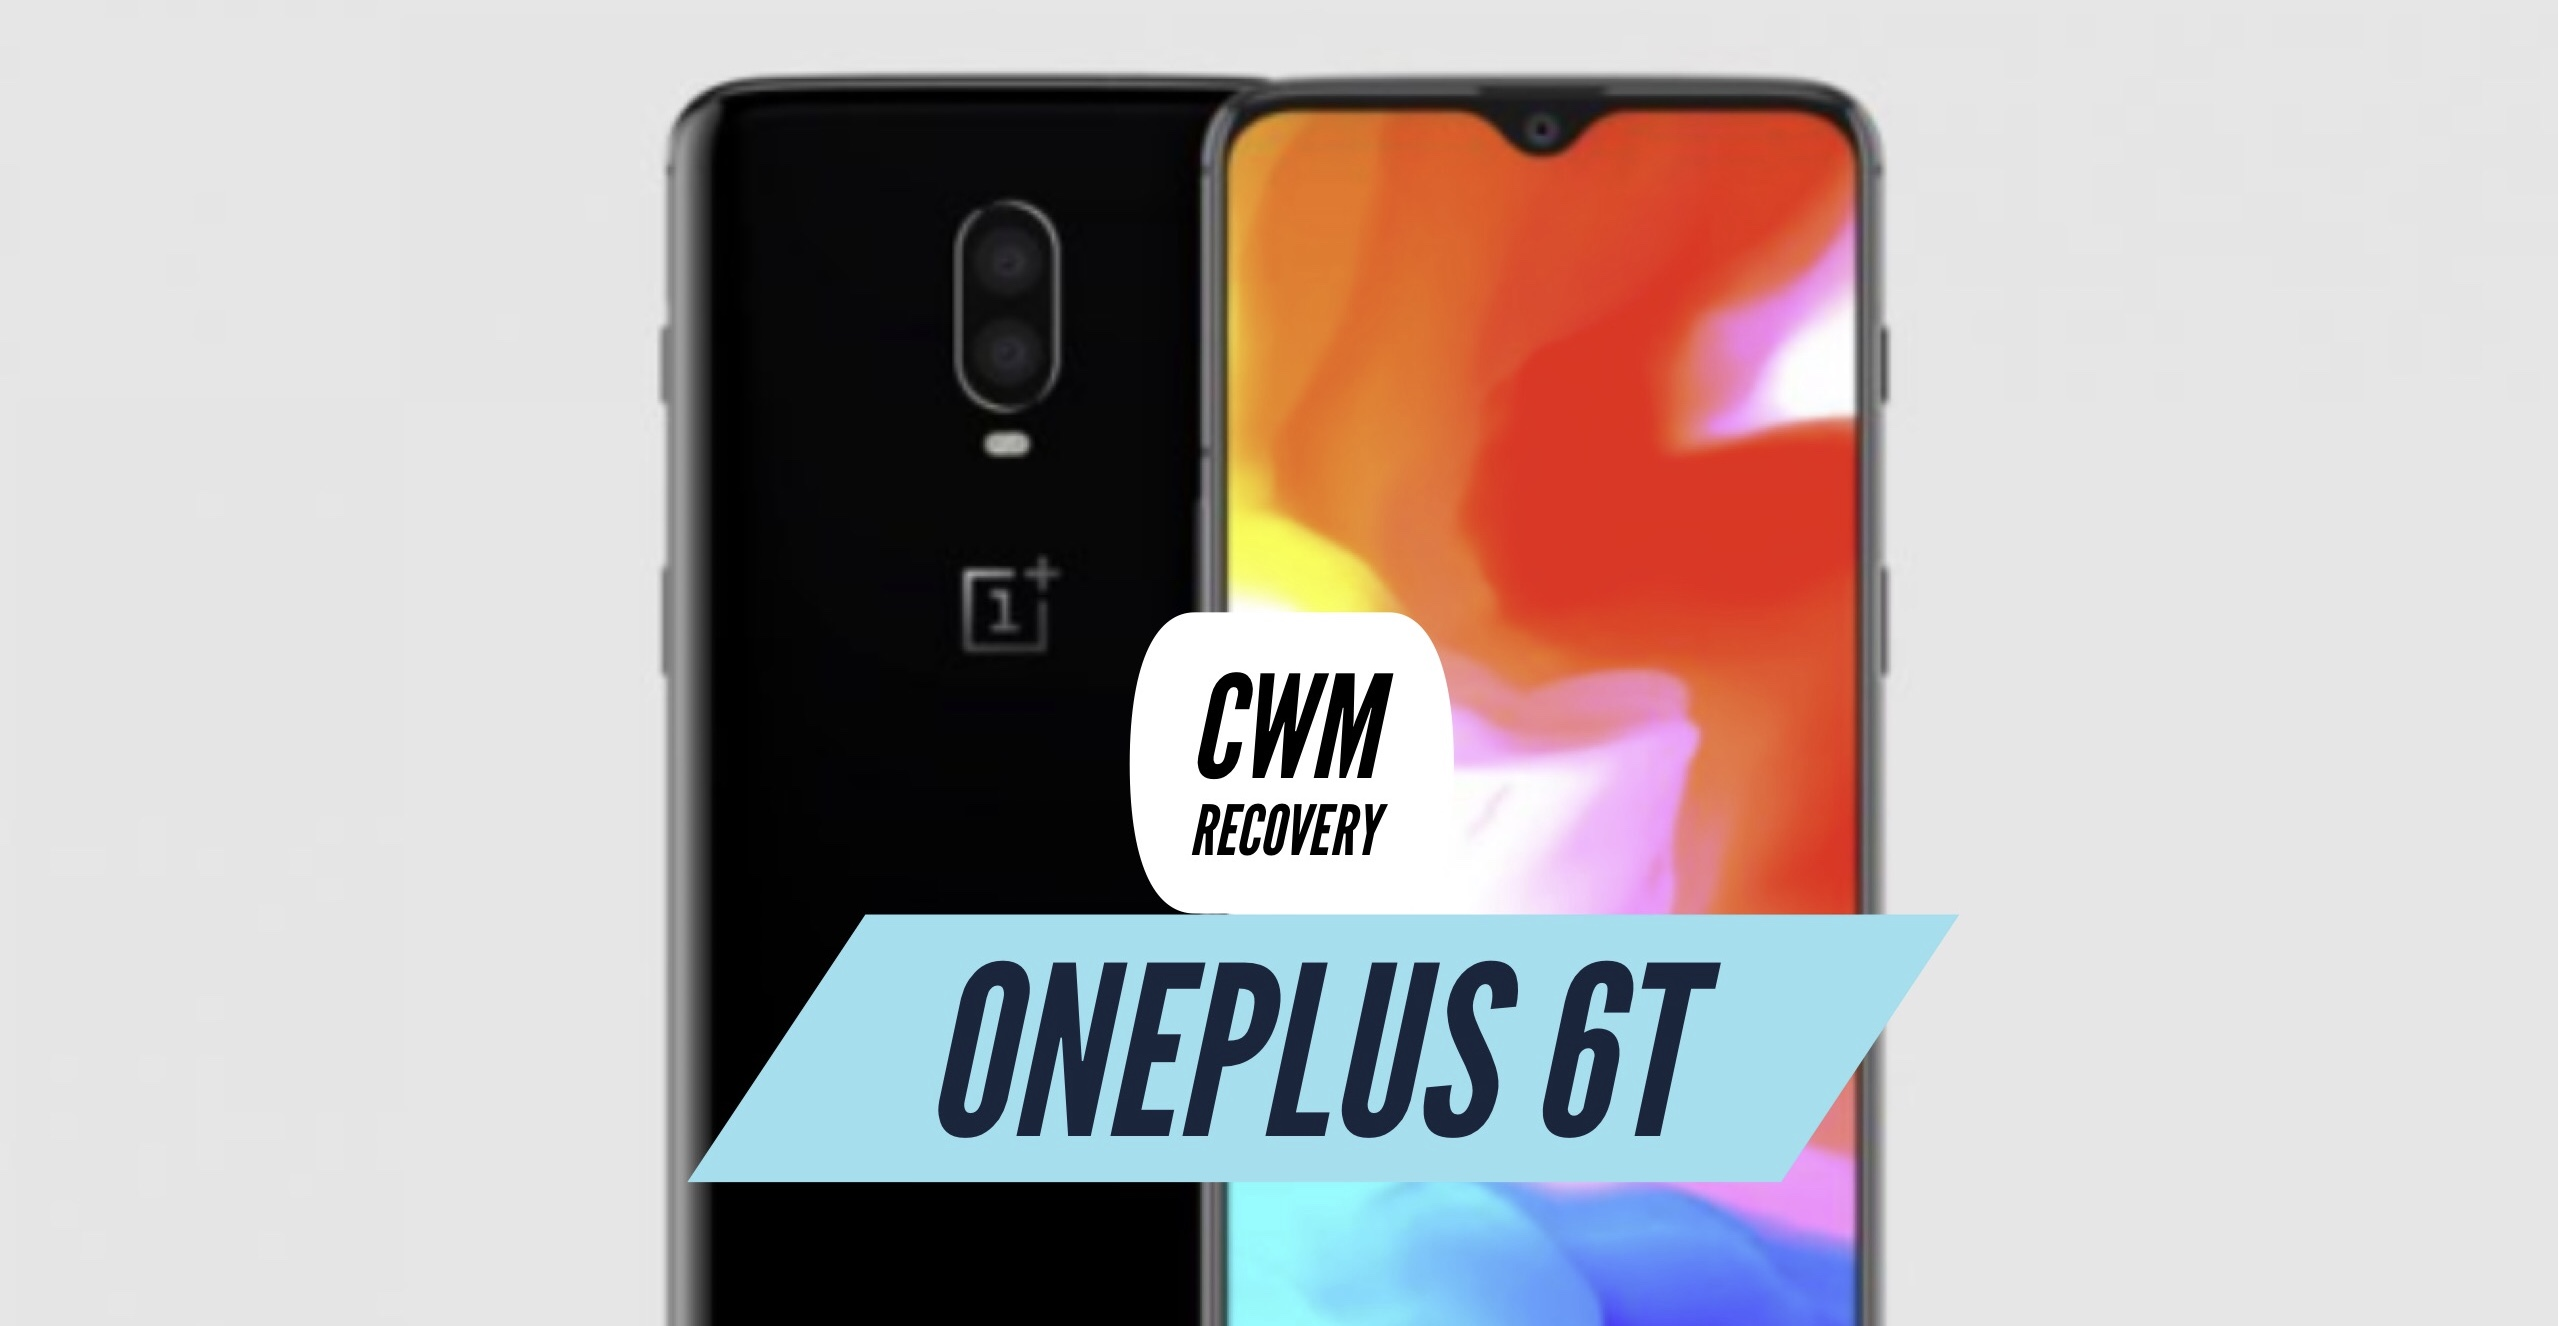 How to Install CWM Recovery on OnePlus 6T? Full Tutorial!